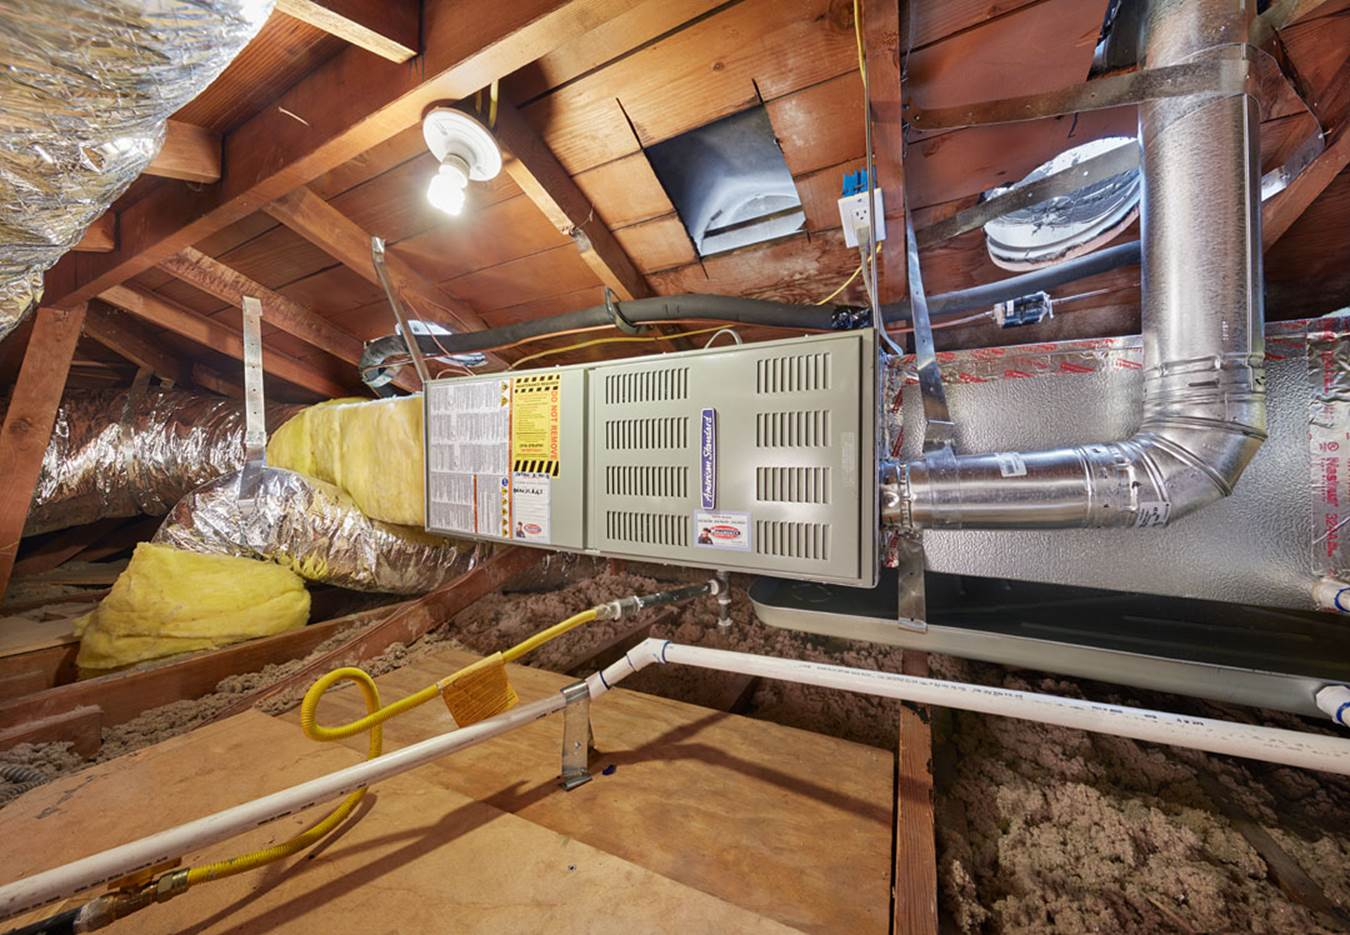 Moving A Furnace To The Attic Some Things To Consider Kilowatt pertaining to dimensions 1350 X 935